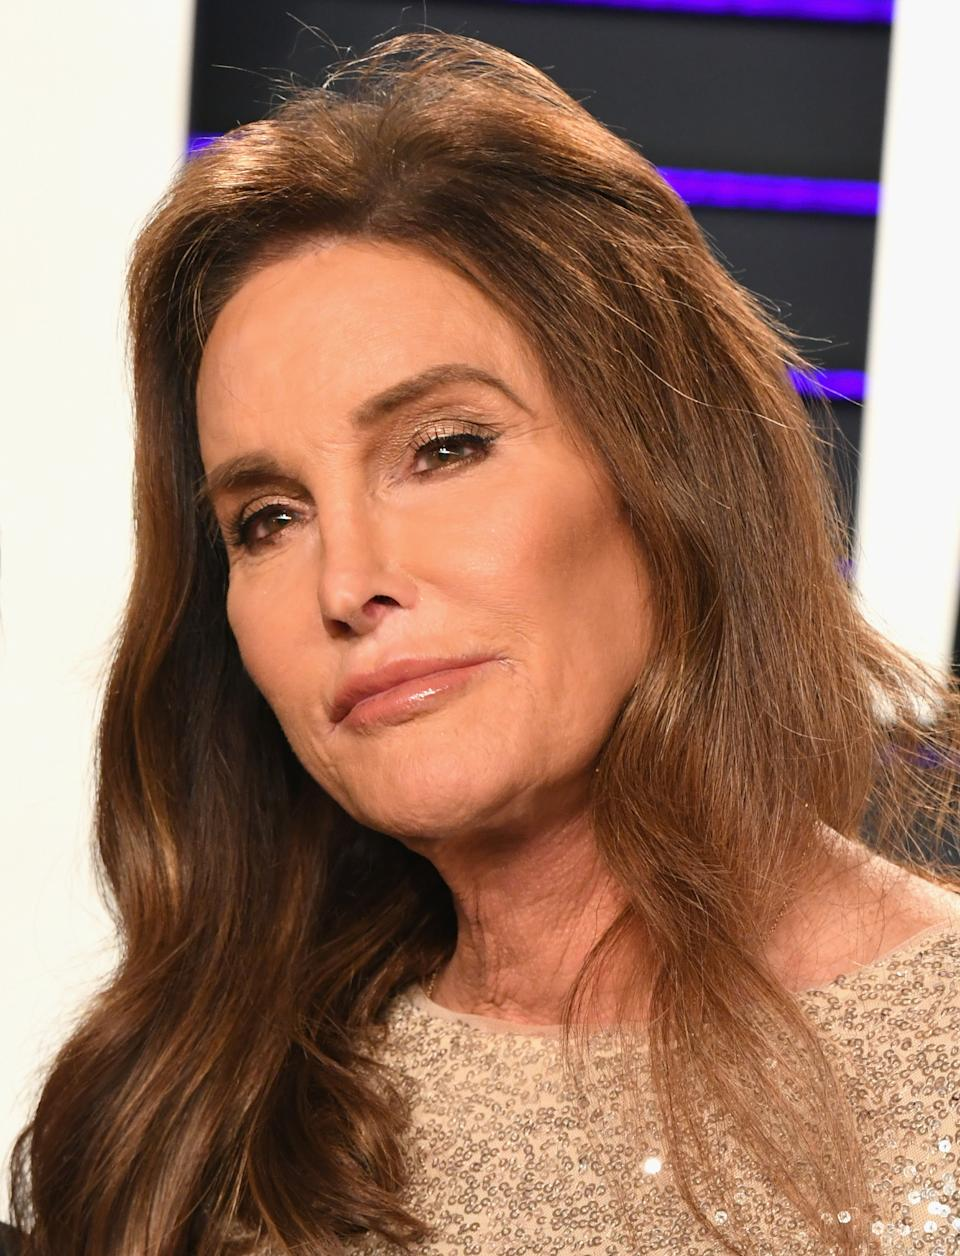 Caitlyn Jenner. Source: Getty Images